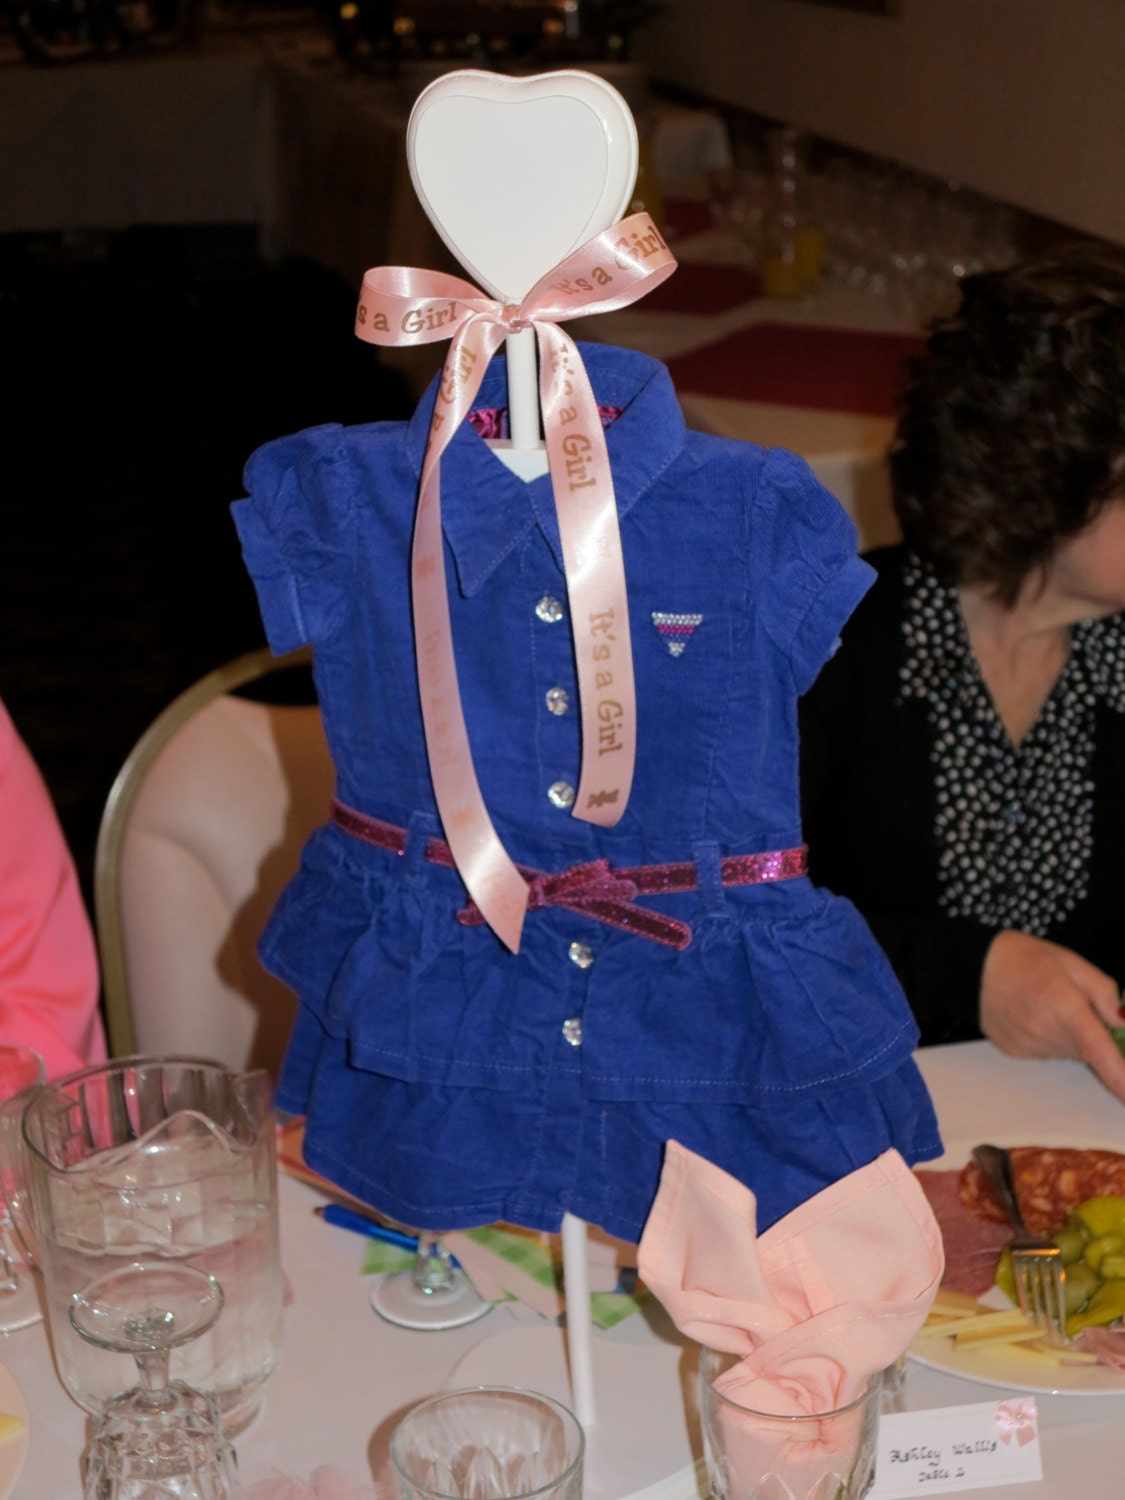 Dress Hanger Baby Shower Centerpiece Stacey Stands By